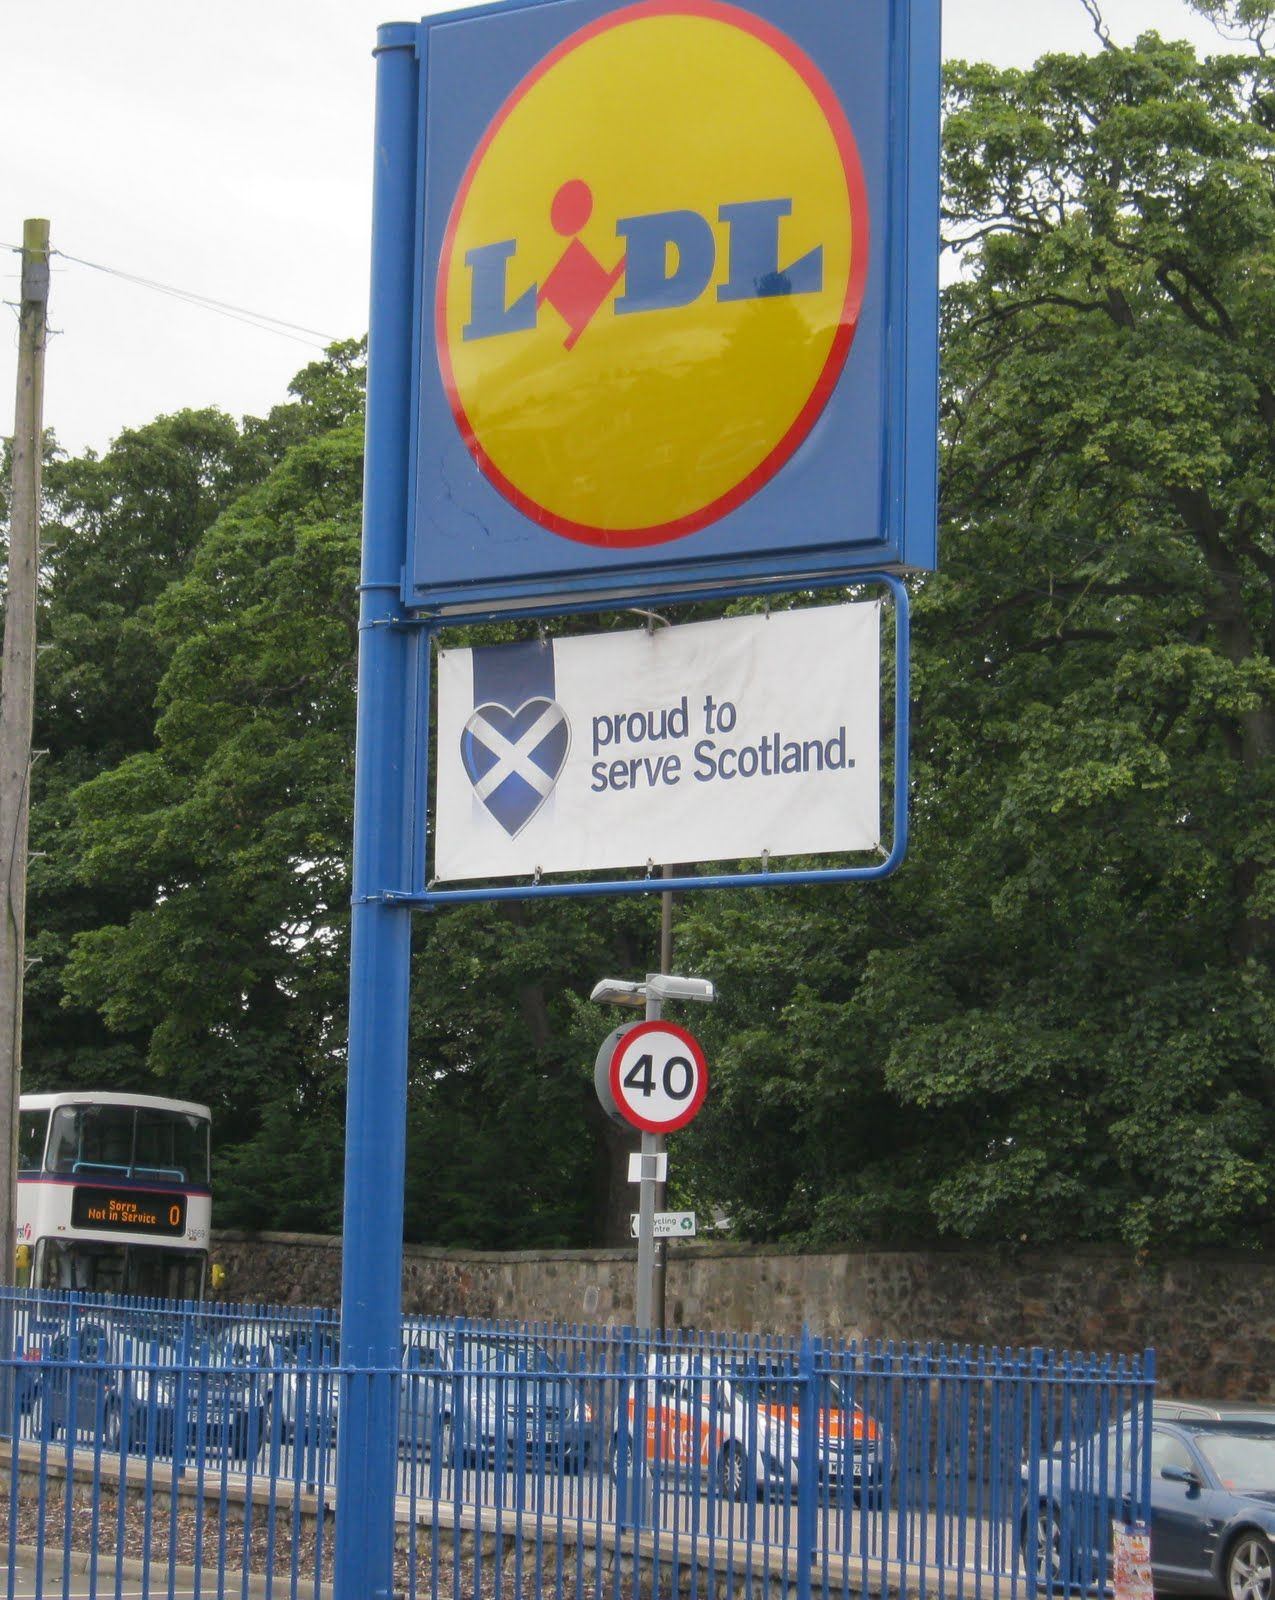 Lidl Shows Its Marketing Nouse In Scotland By Being One Of The Few Uk Wide And International Companies To Use T Design Palette International Companies Scotland